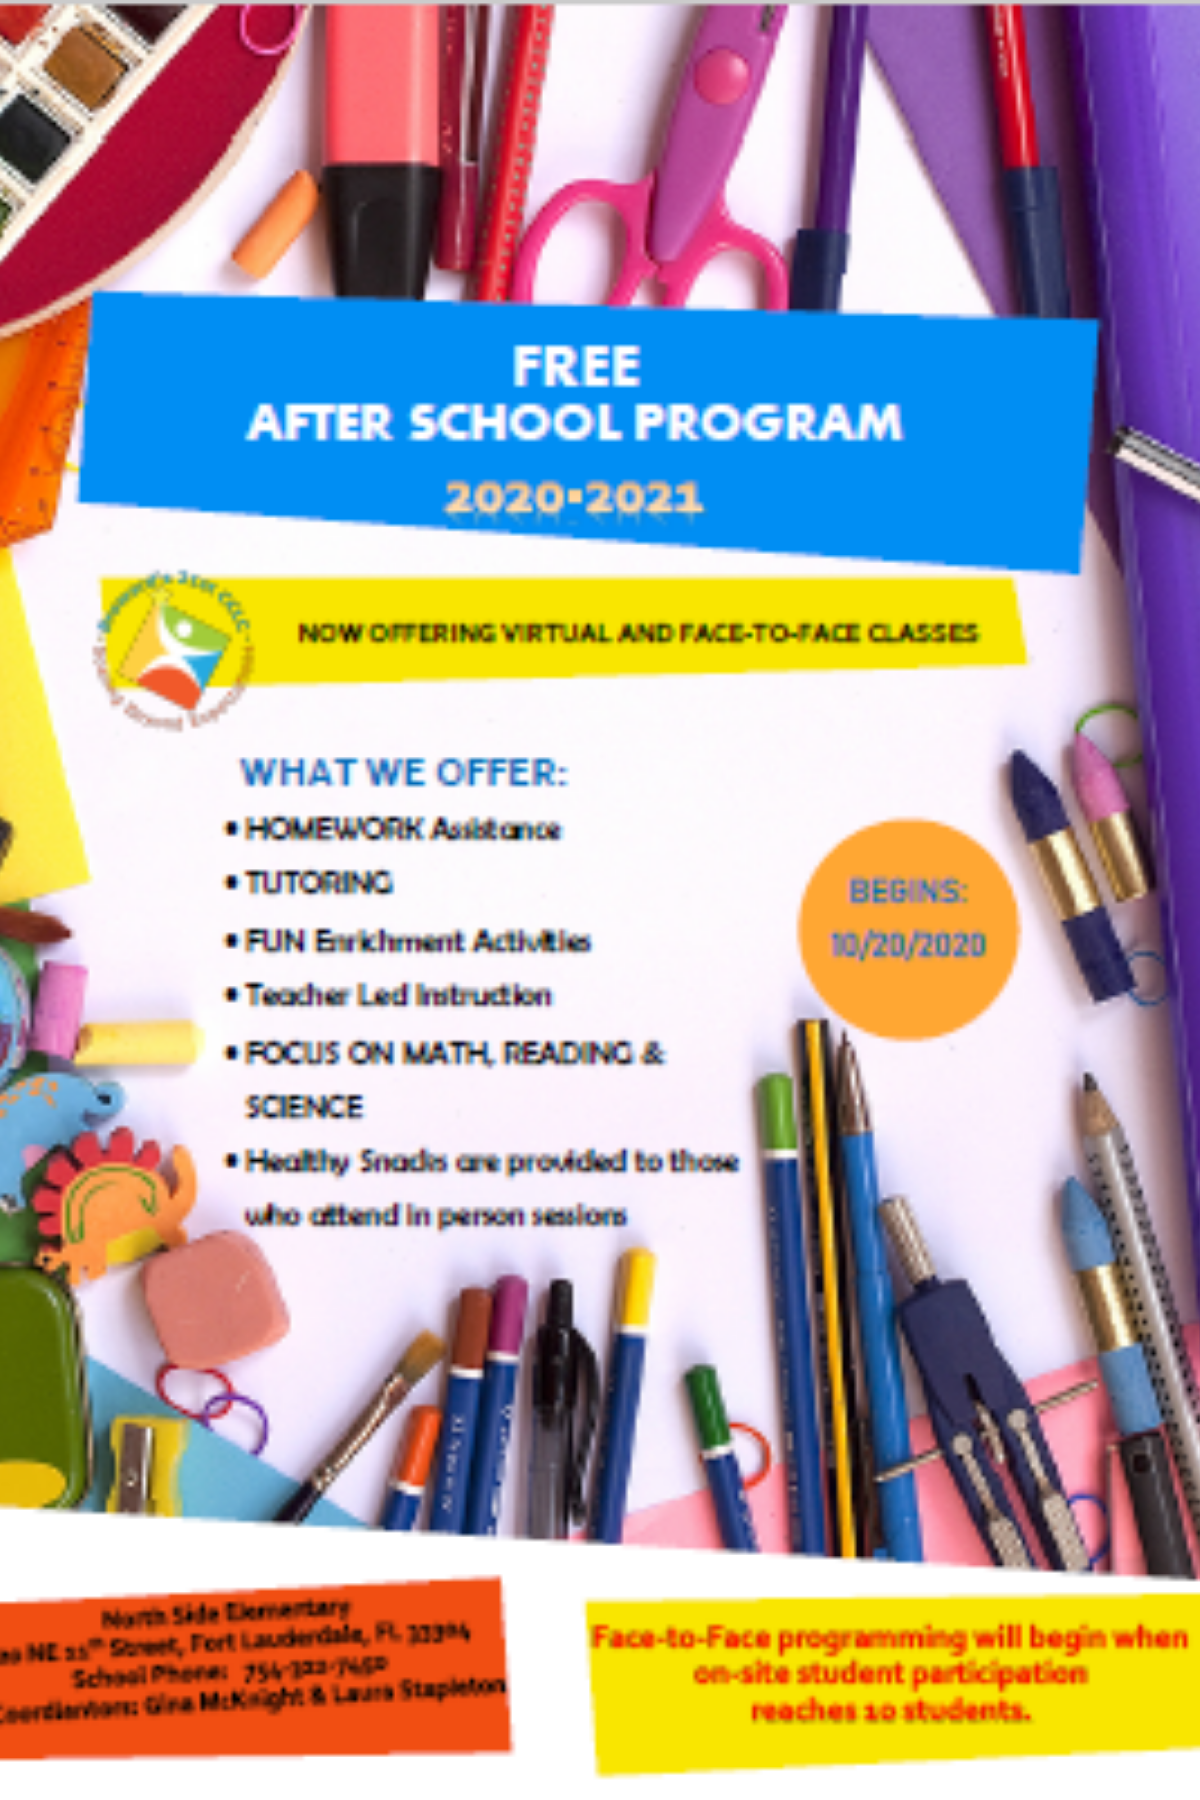 21st Century After School Program Flyer 2020 2021